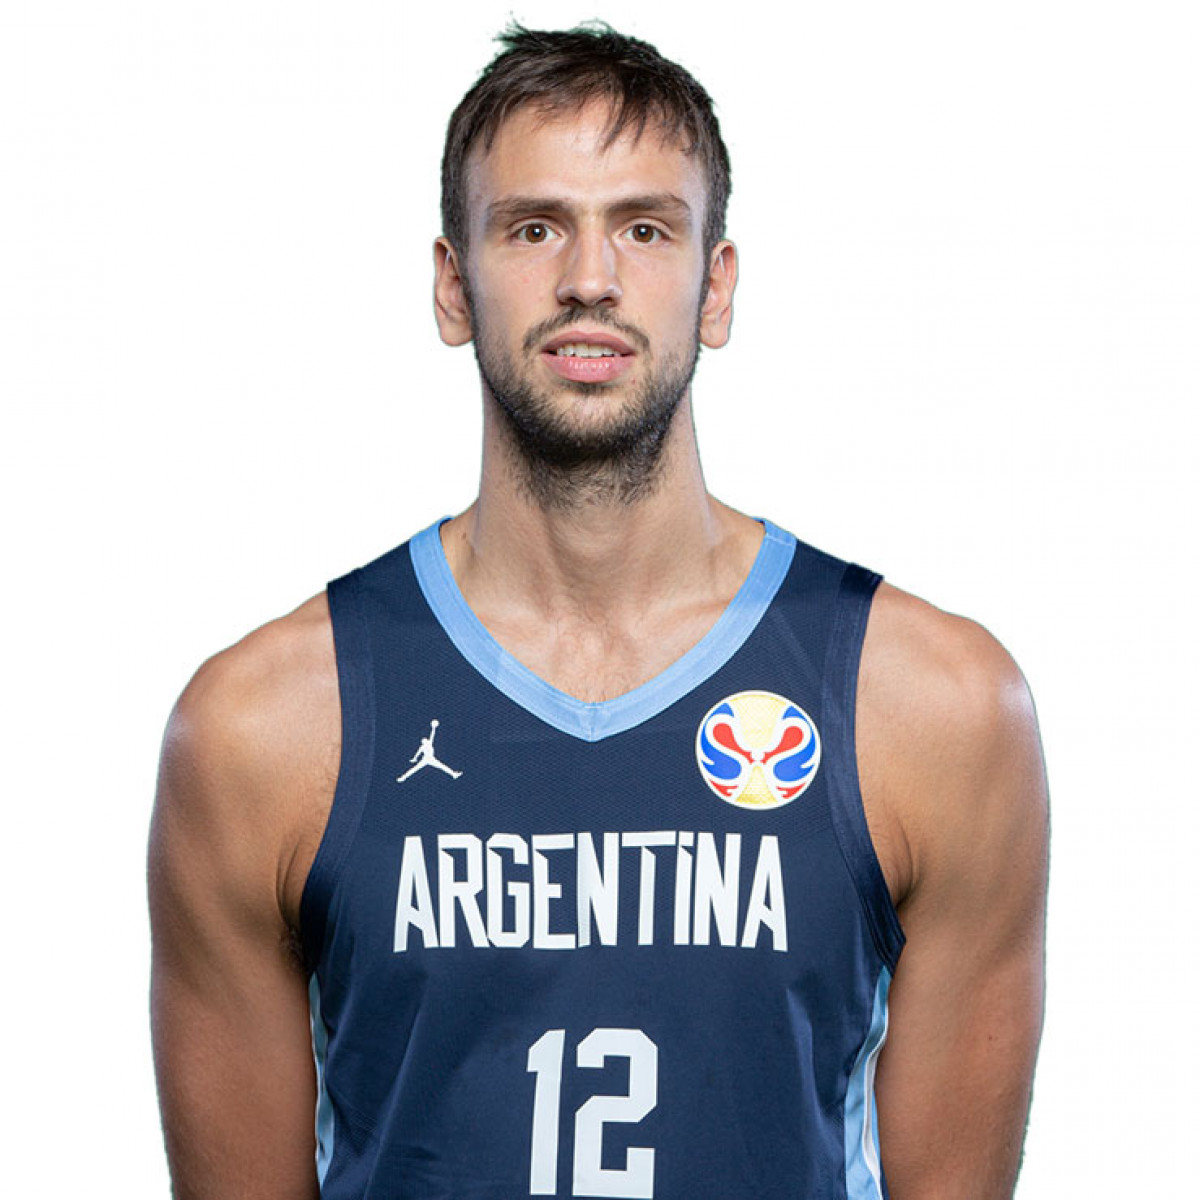 Photo of Marcos Delia, 2019-2020 season